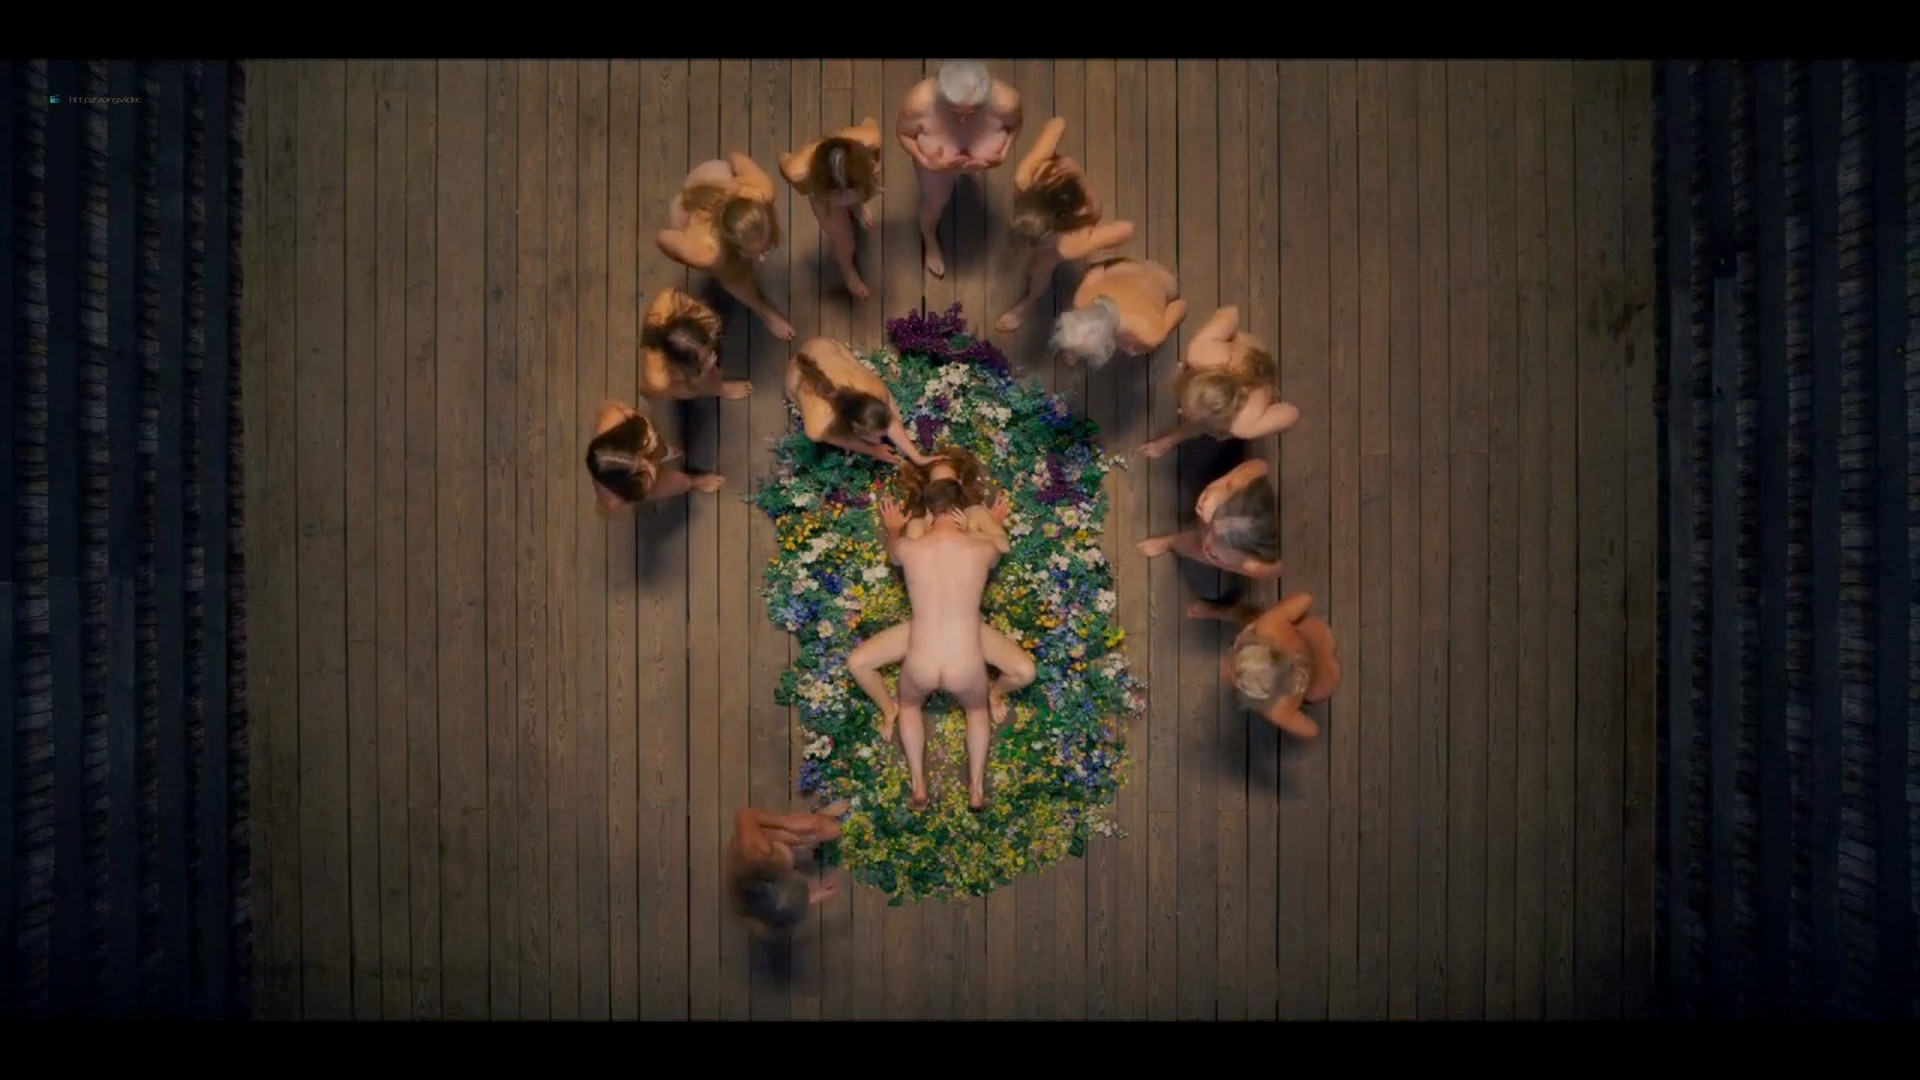 Isabelle Grill nude sex others nude full frontal - Midsommar (2019) HD 1080p Web (4)